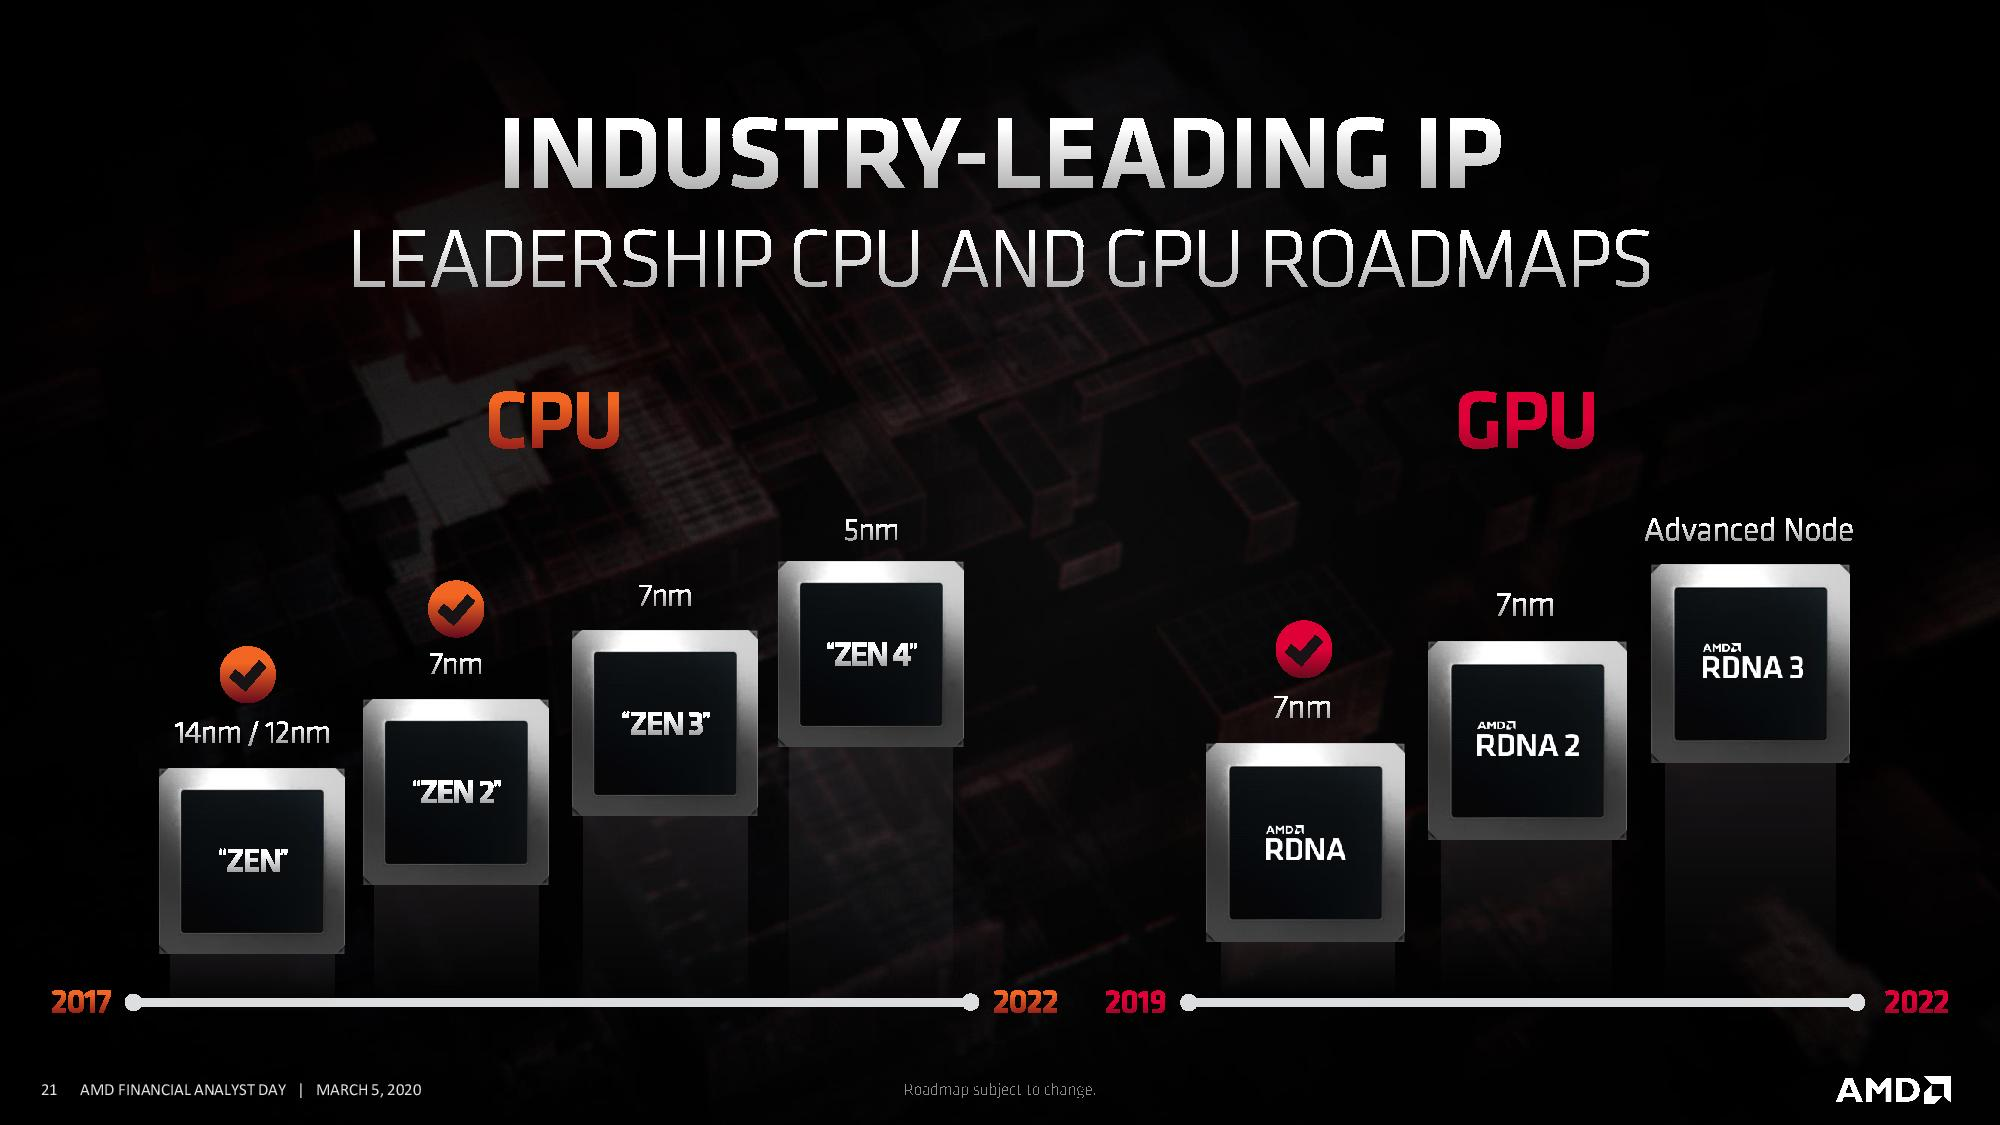 New Amd Ryzen And Epyc Roadmaps Zen 4 And 5nm Genoa By 2022 Zen 3 And Milan In 2020 Tom S Hardware